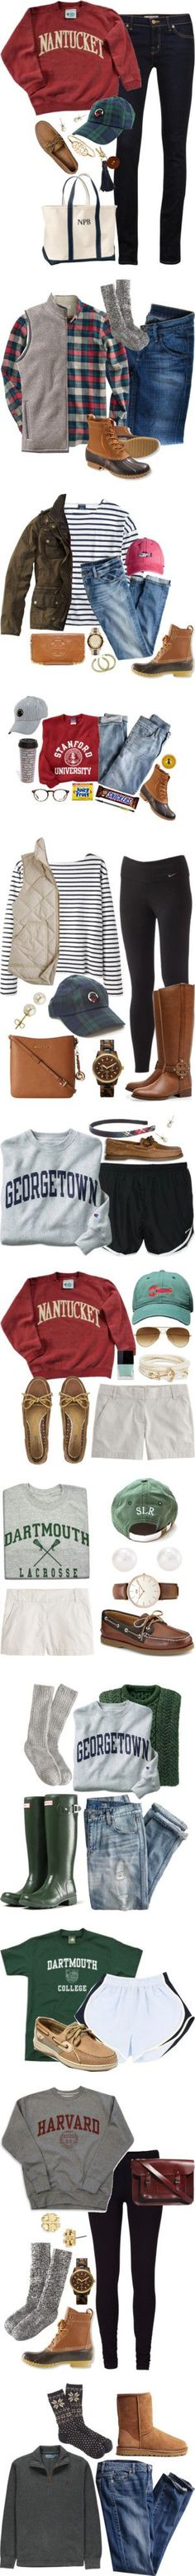 """The Casual New England Prep"" by preppy-katie ❤ liked on Polyvore"